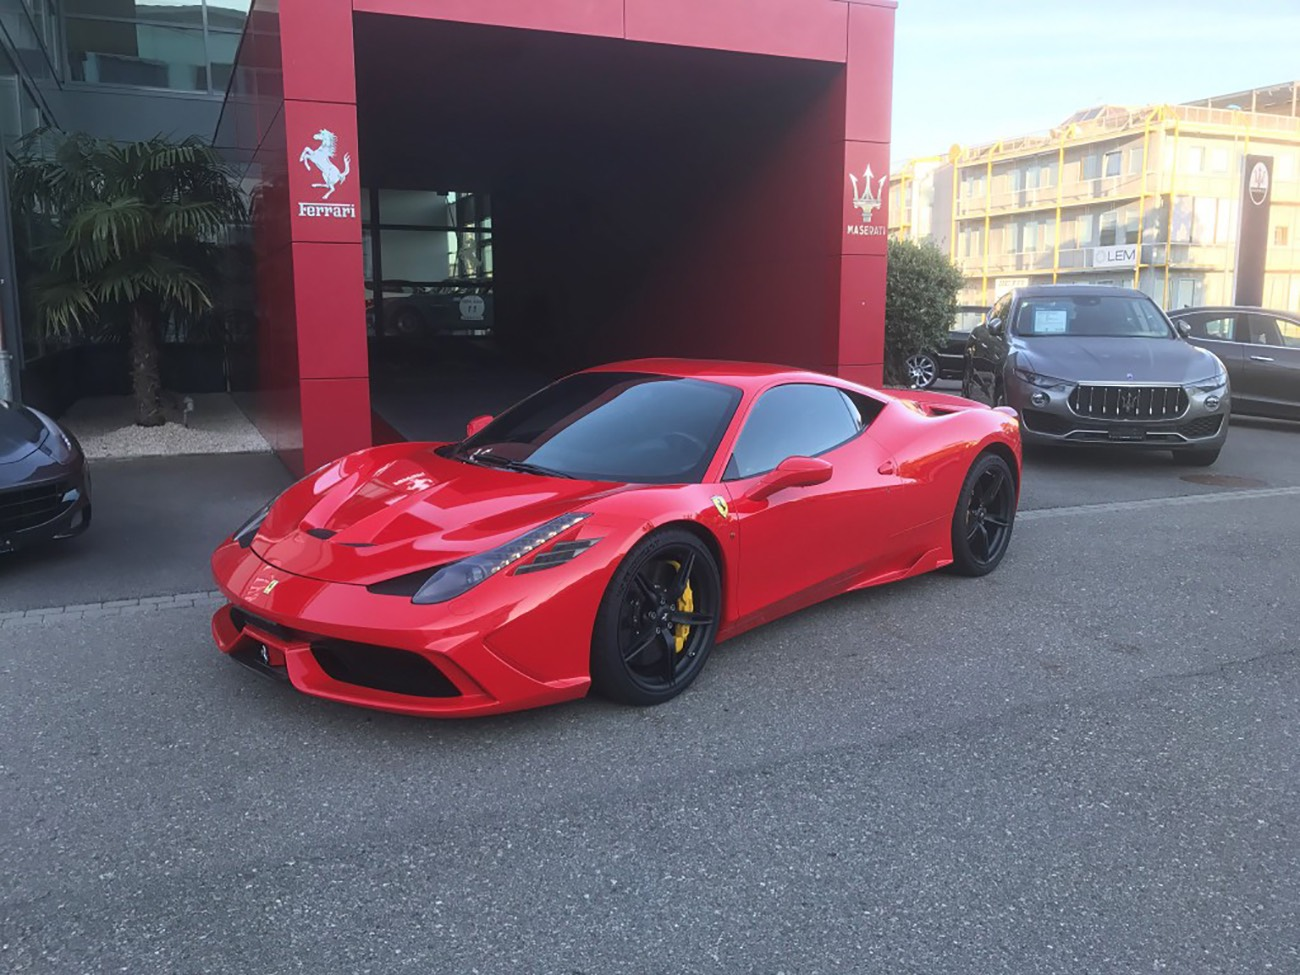 la voiture de la semaine ferrari 458 speciale 4 5 v8 coup modenacars fr modenacars fr. Black Bedroom Furniture Sets. Home Design Ideas